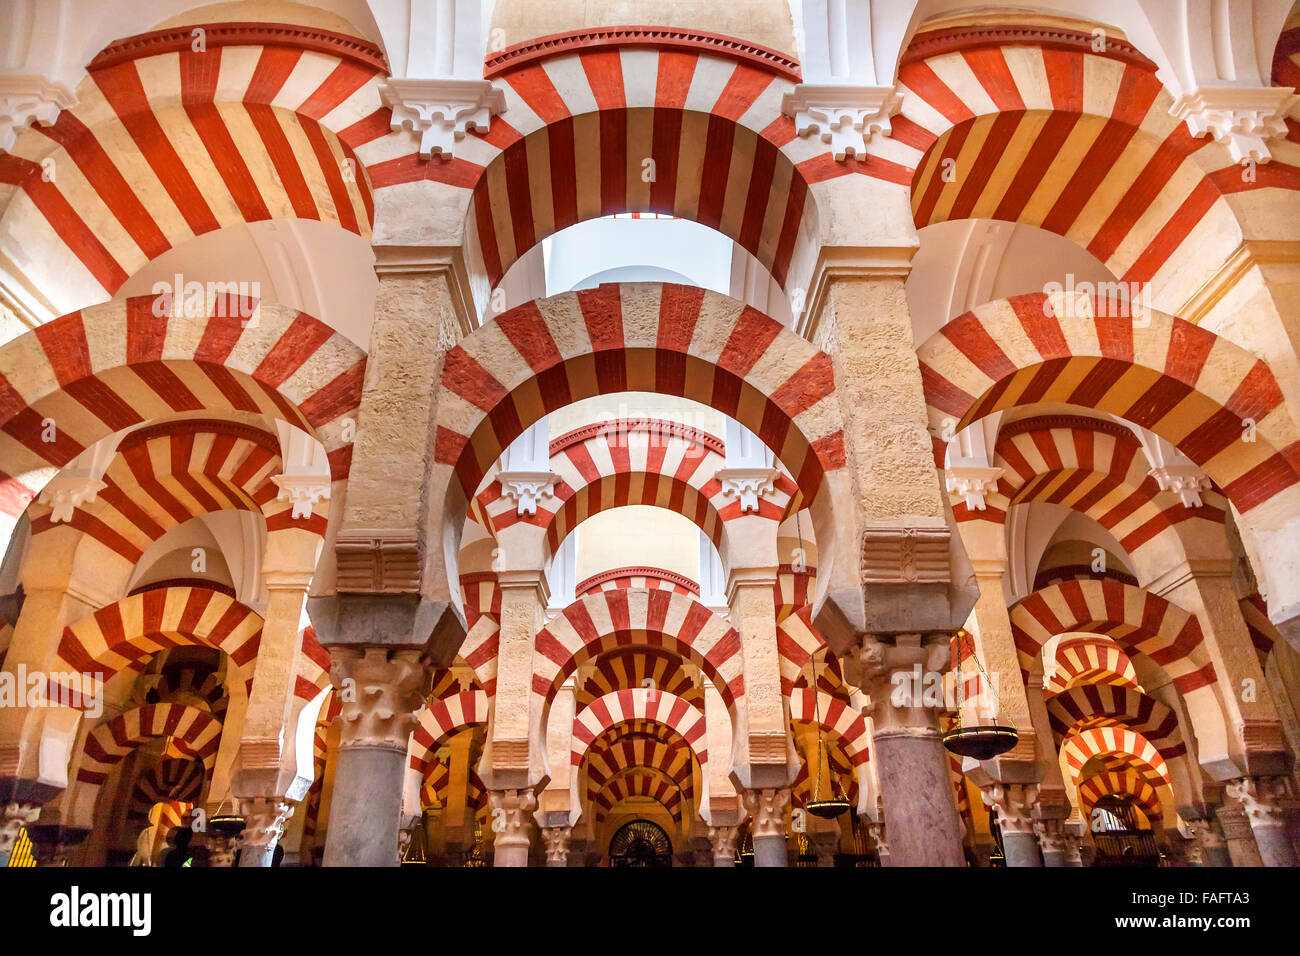 Mezquita Cordoba High Resolution Stock Photography And Images Alamy